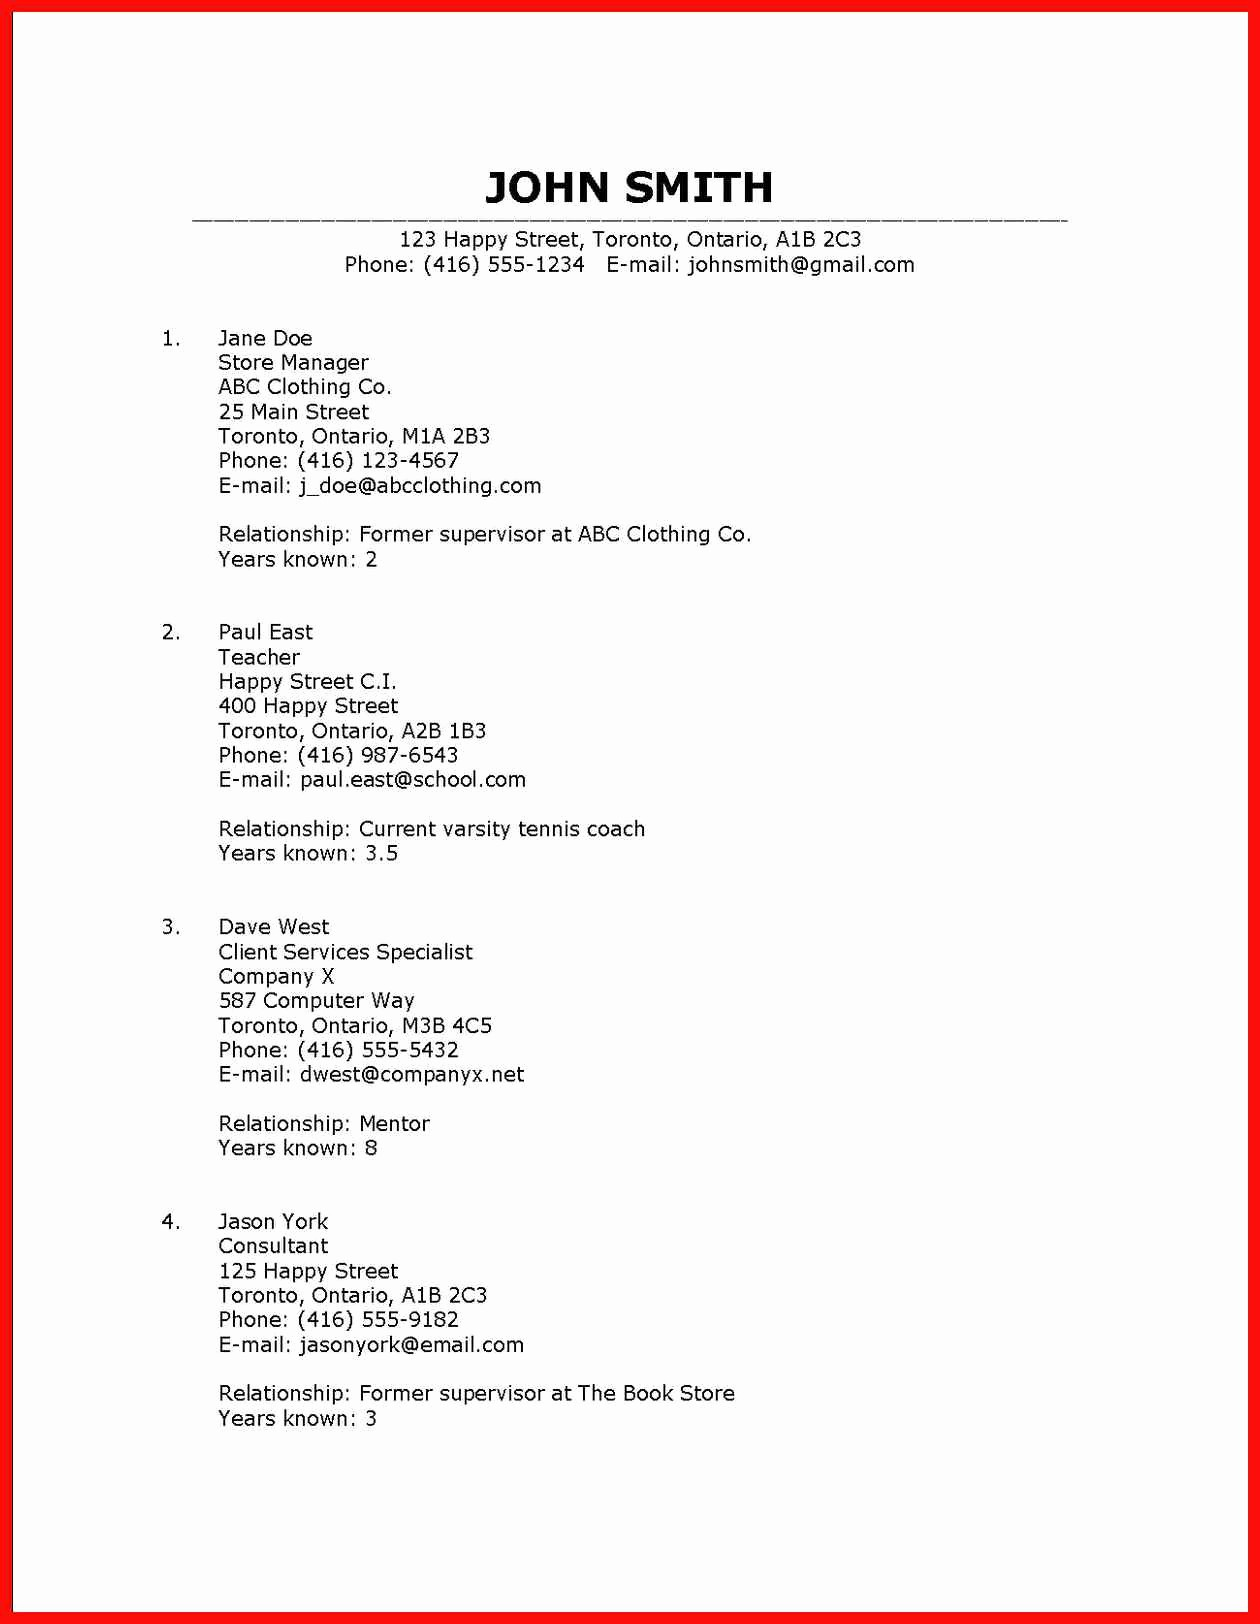 Reference List for A Job Inspirational Reference List Resume